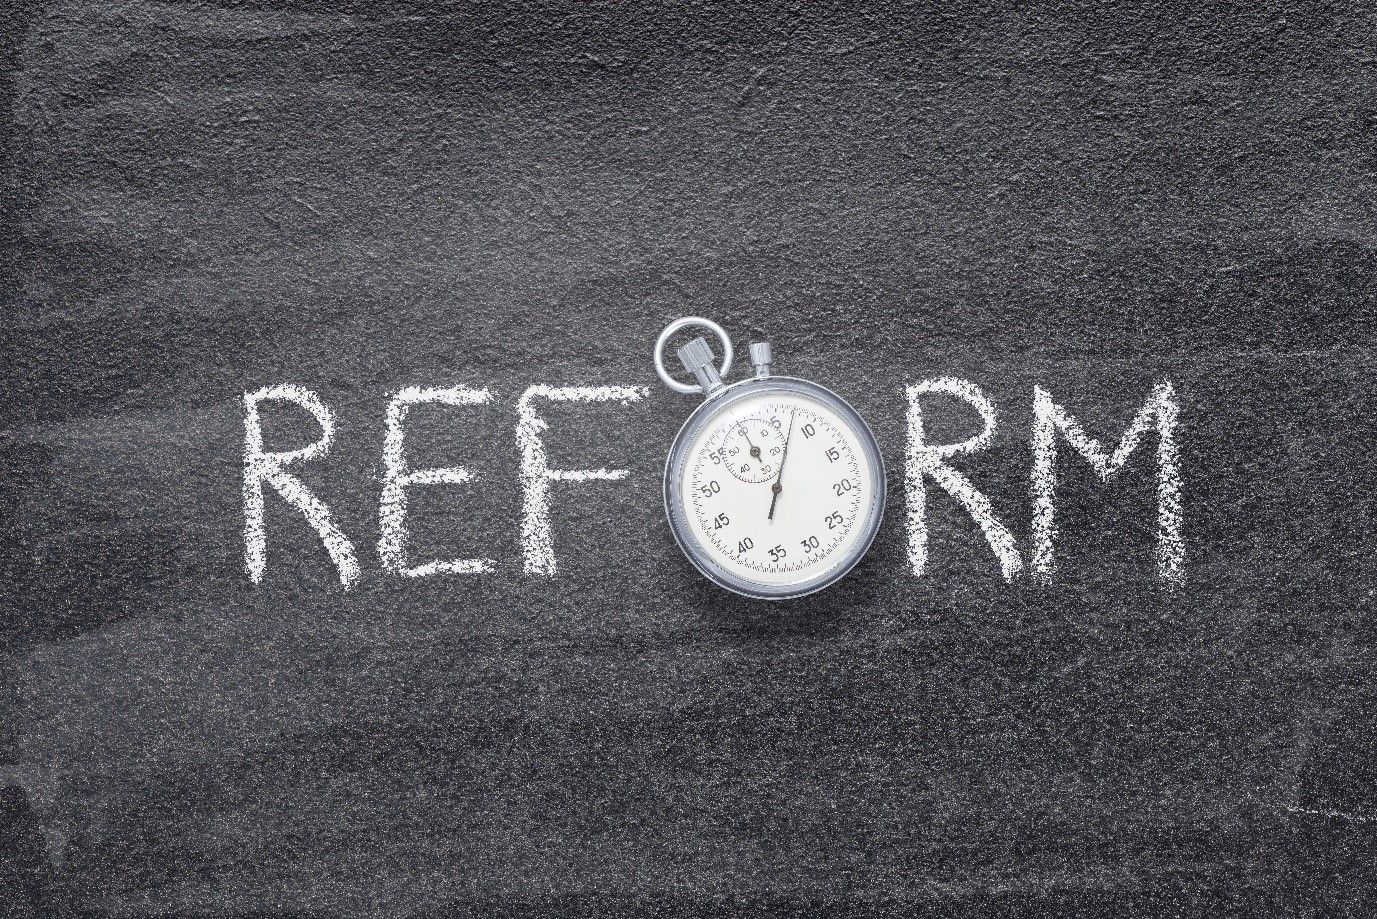 COAG TO NATIONAL FEDERATION REFORM COMMISSION: THE NEW FEDERATION